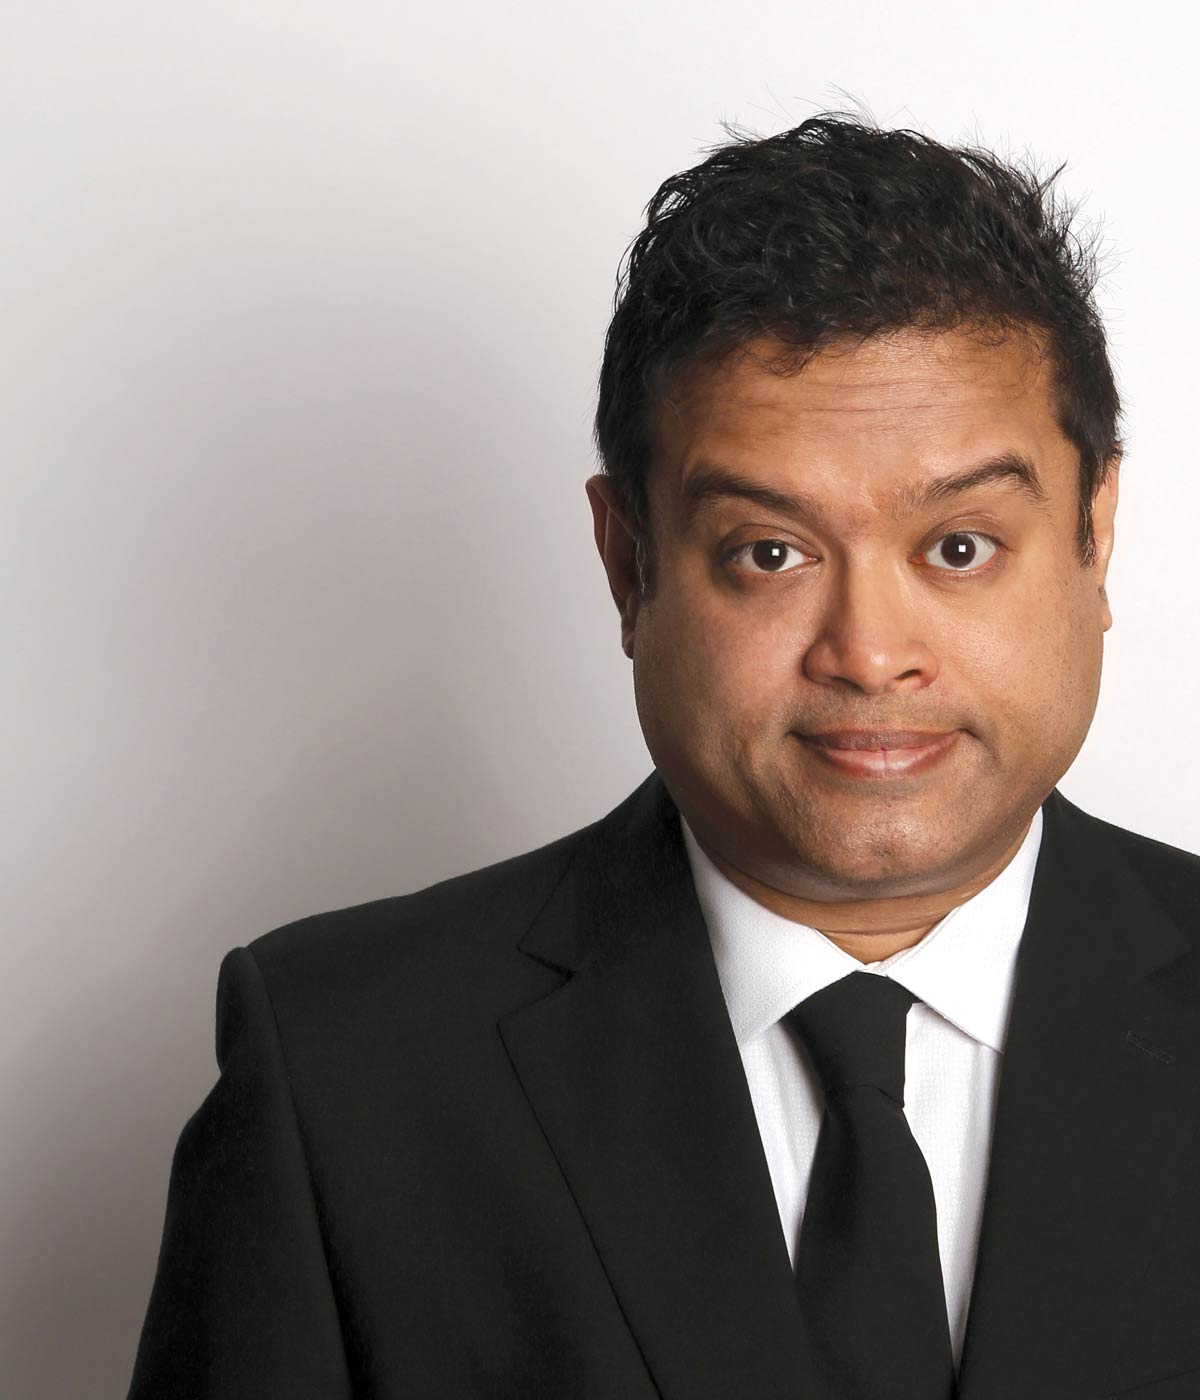 About Paul Sinha